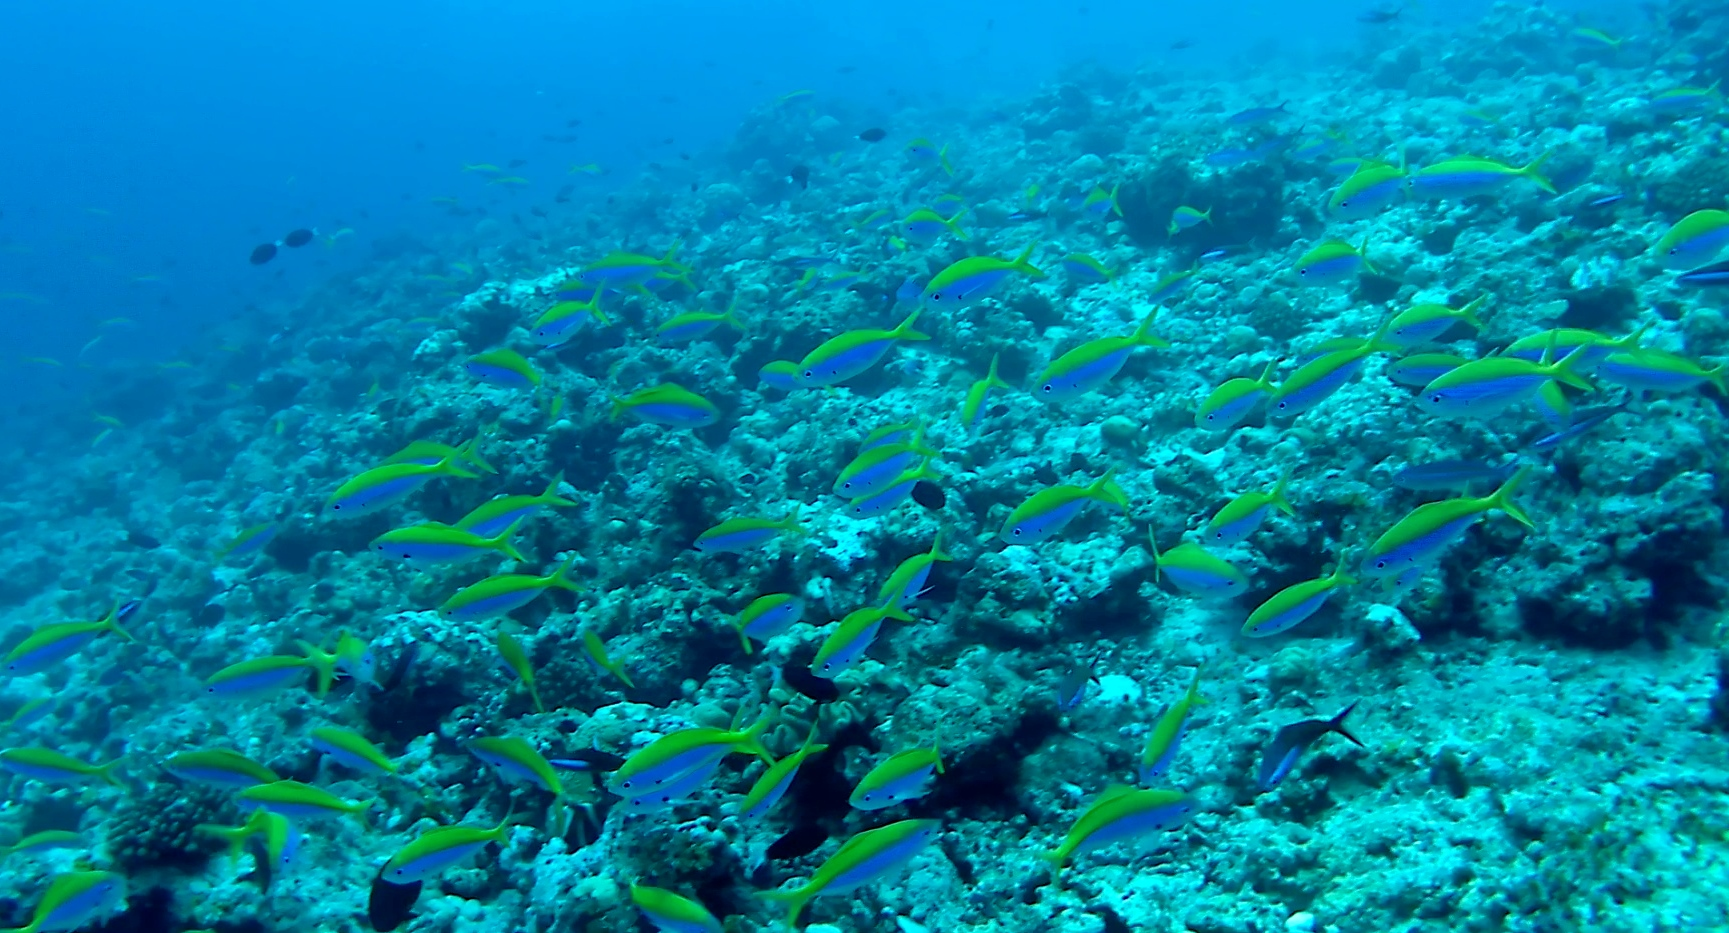 Pesce Fuciliere di yellowback intotheblue.it